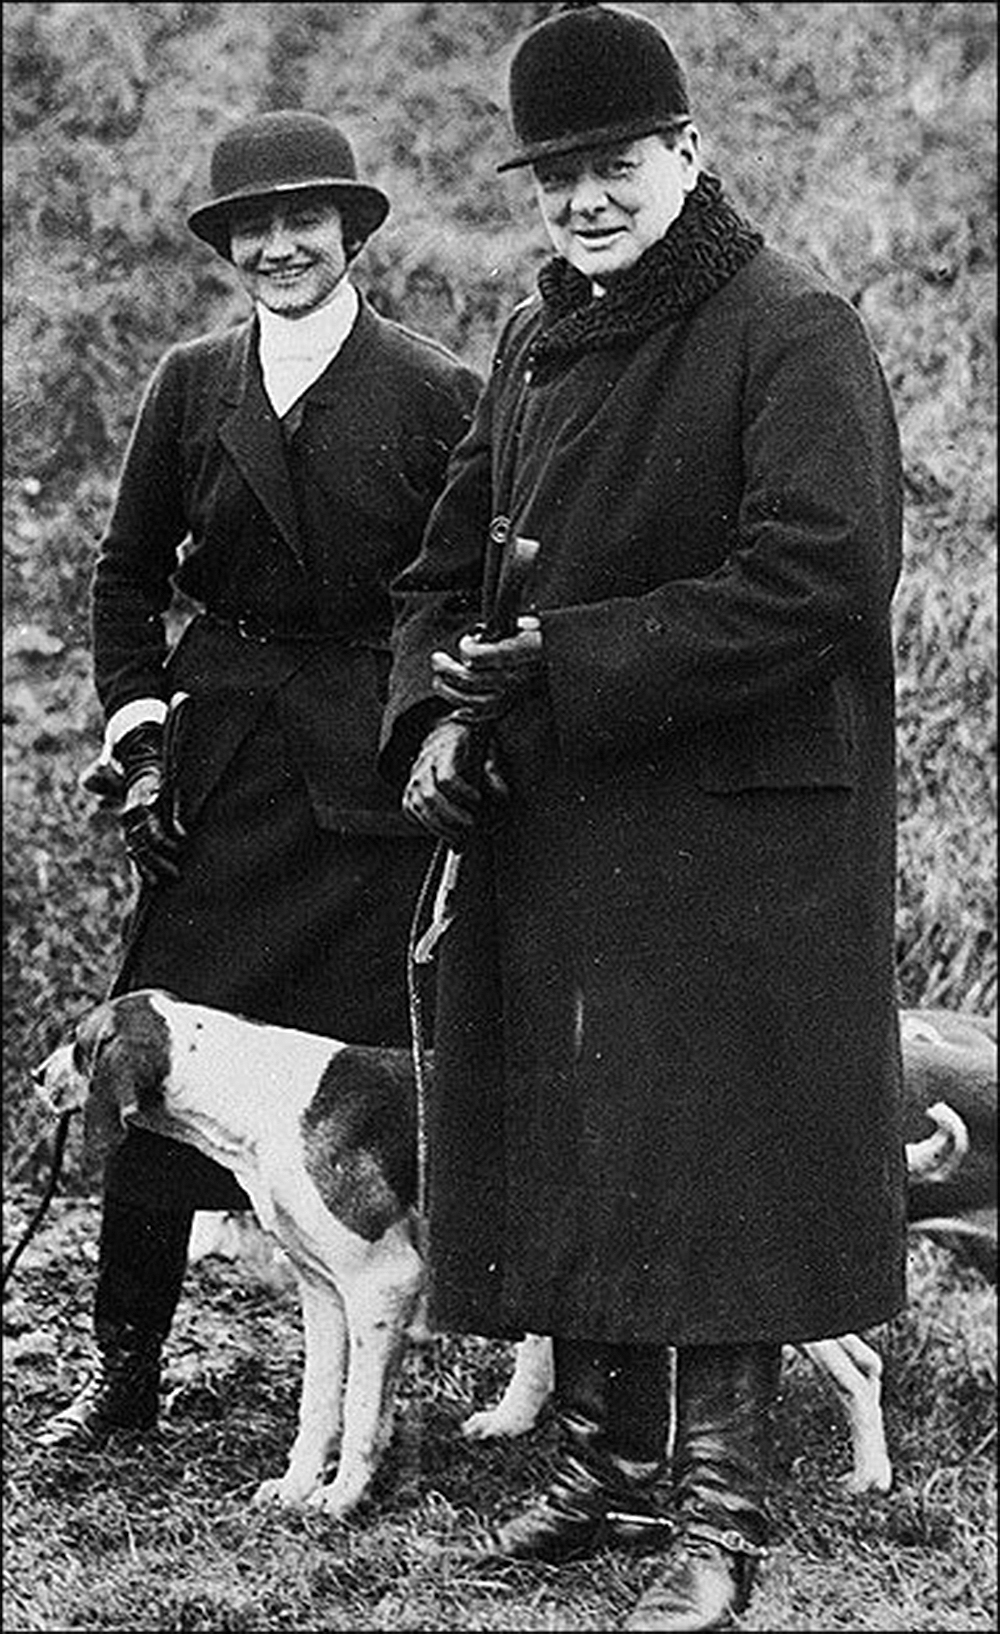 Winston Churchill and Coco Chanel, 1921. Wikimedia Commons.